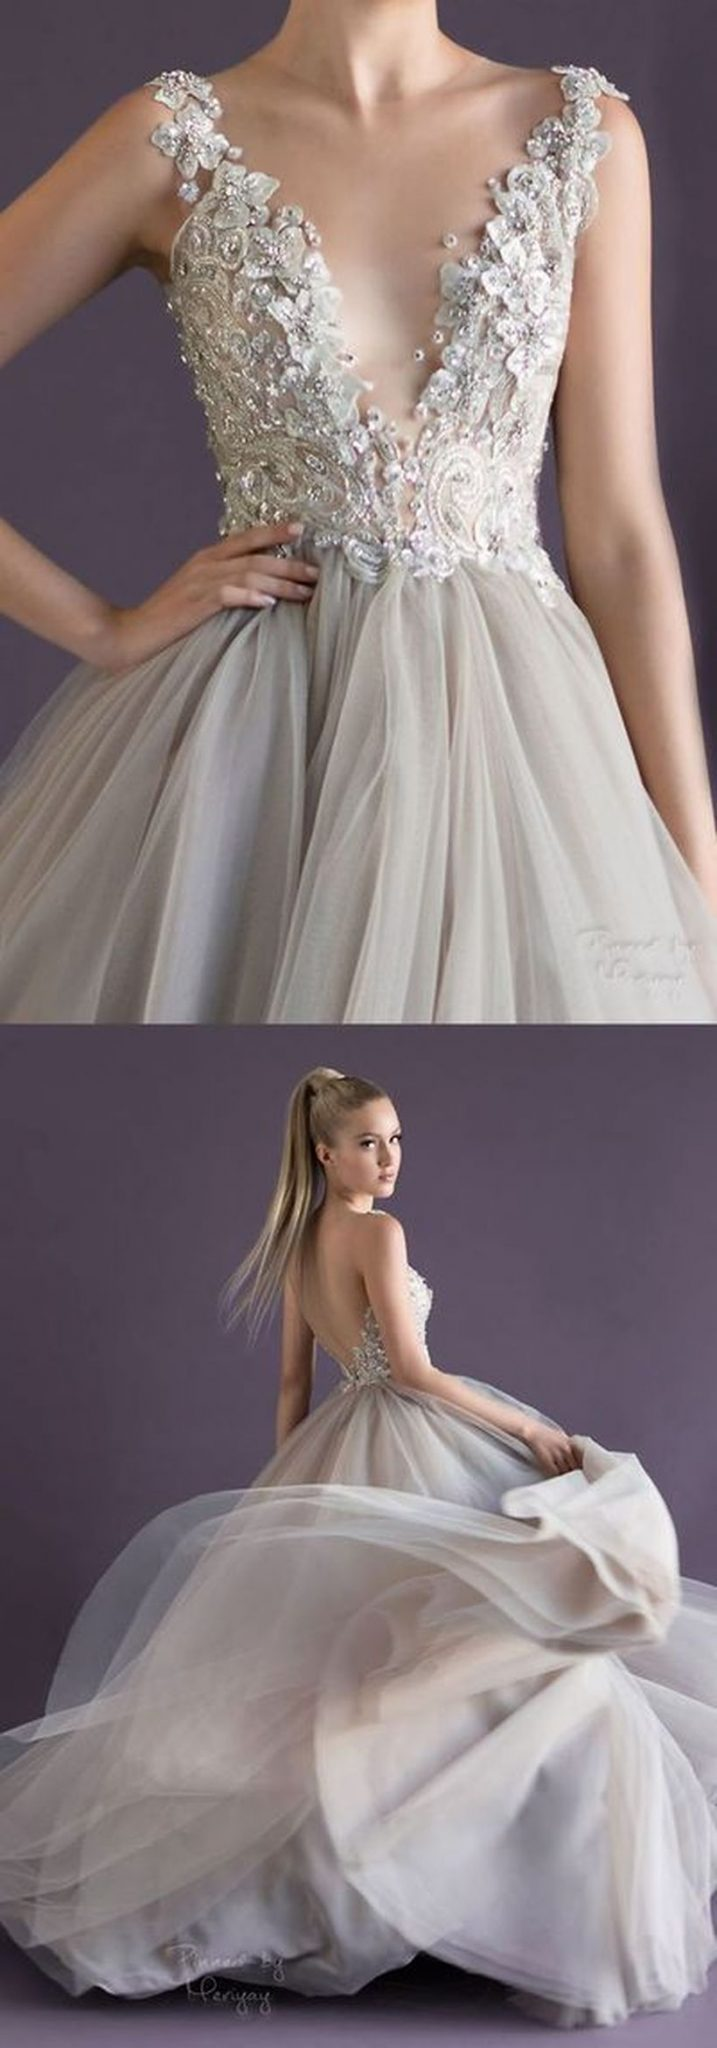 Gorgeous prom dresses for teens ideas 2017 1